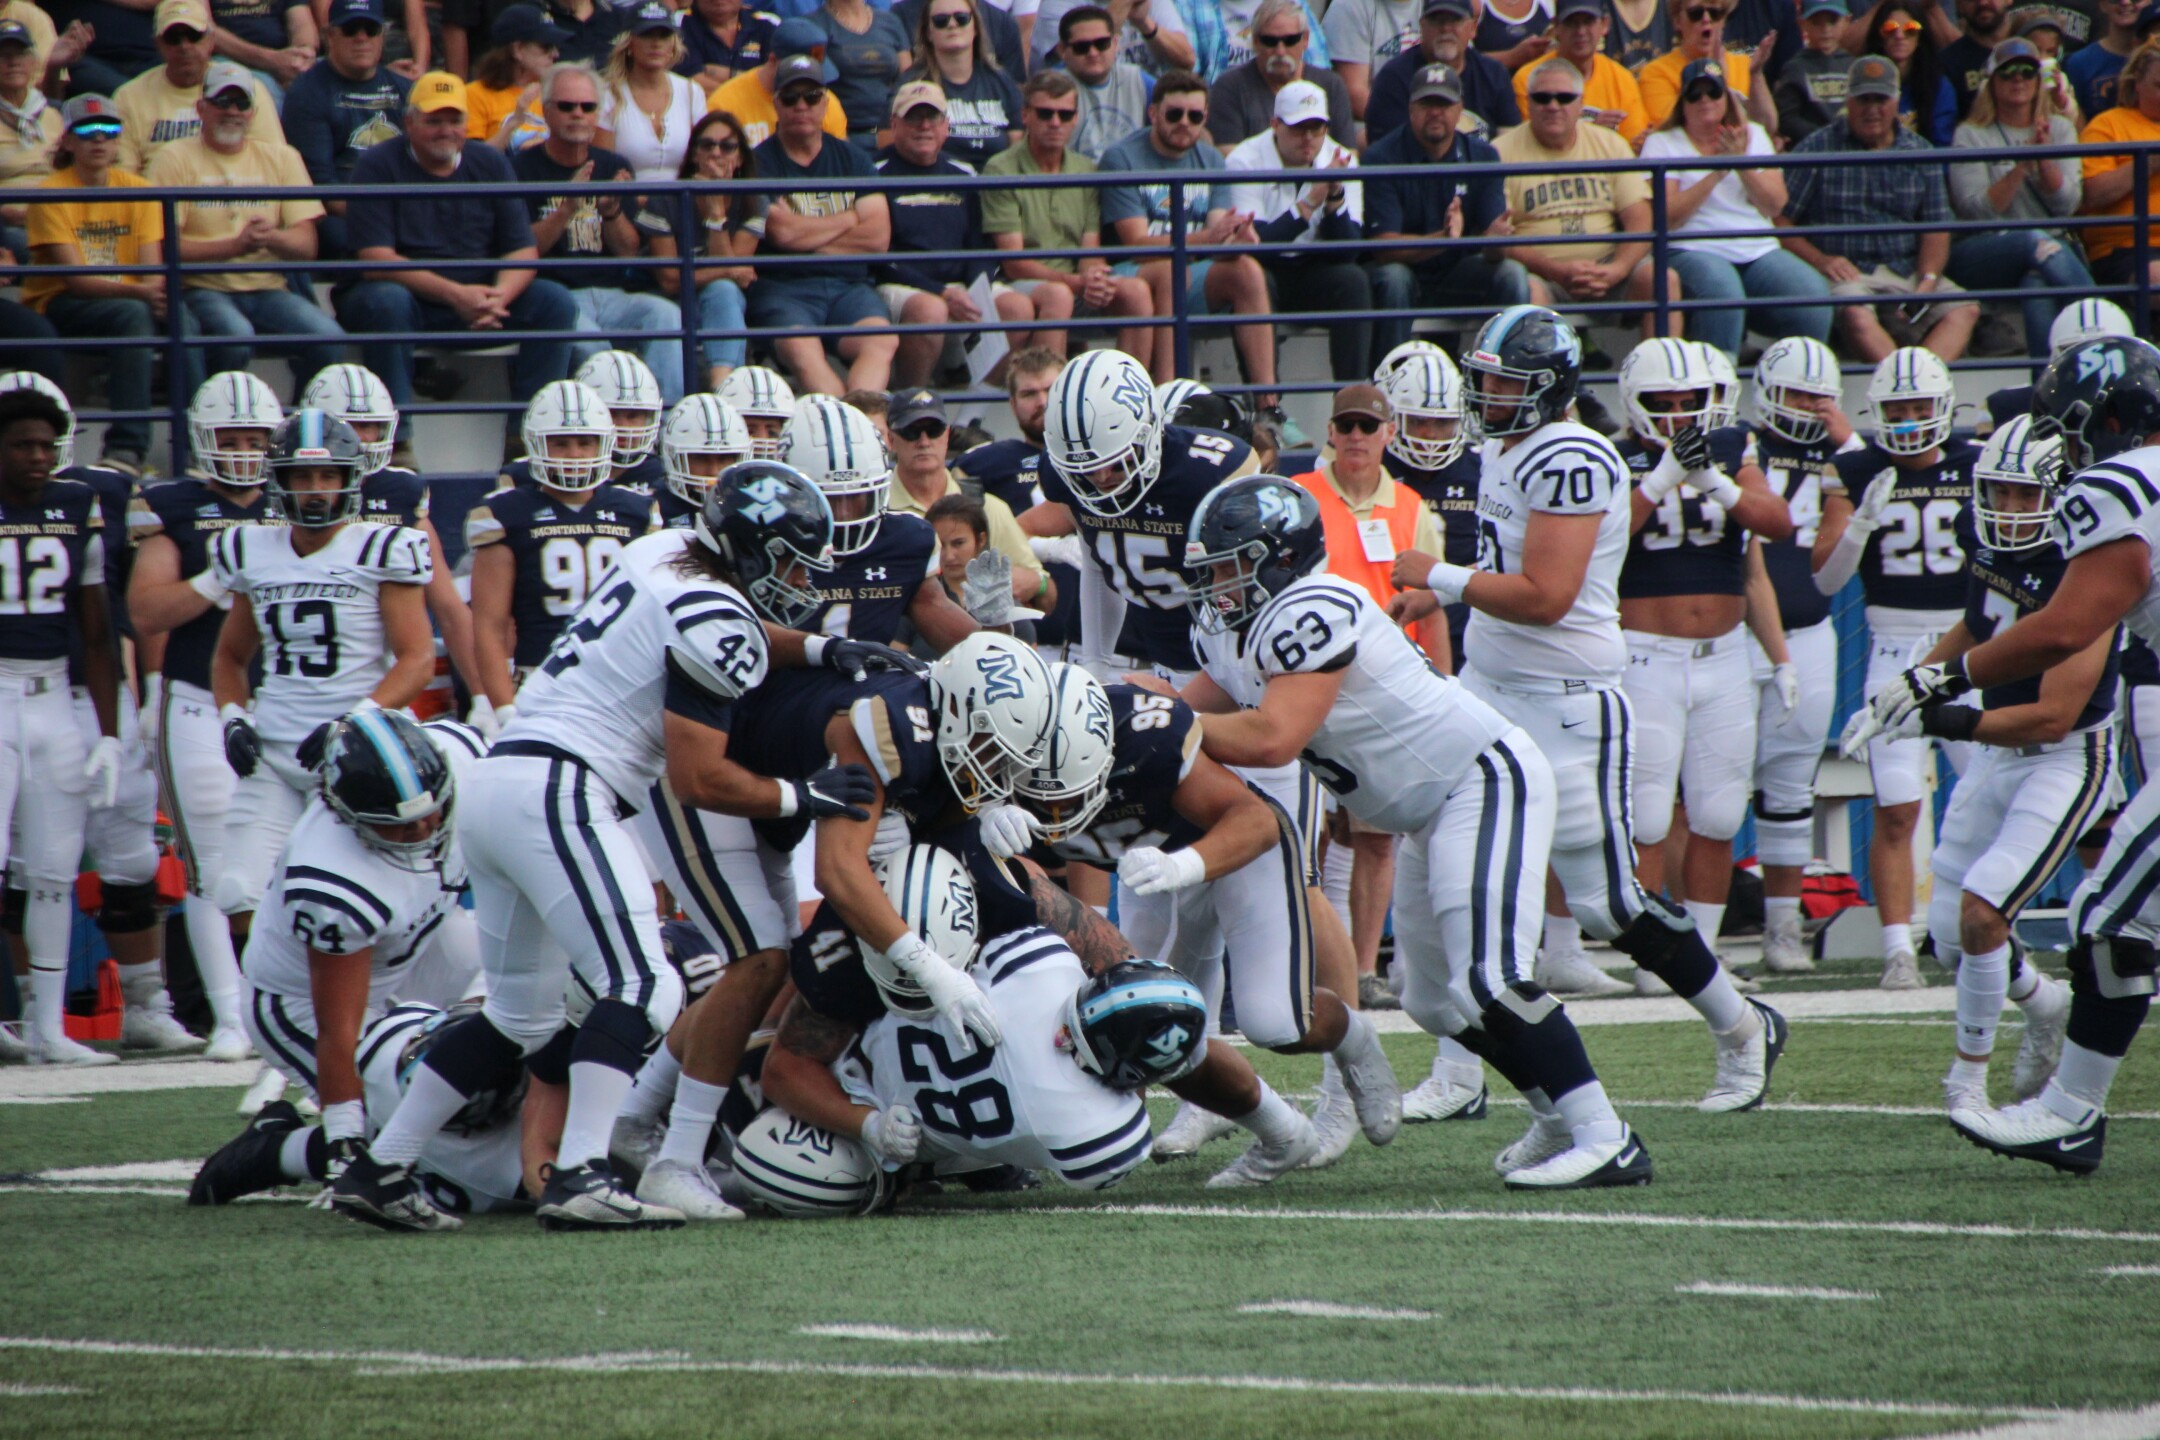 Montana State's defense swarms for a tackle